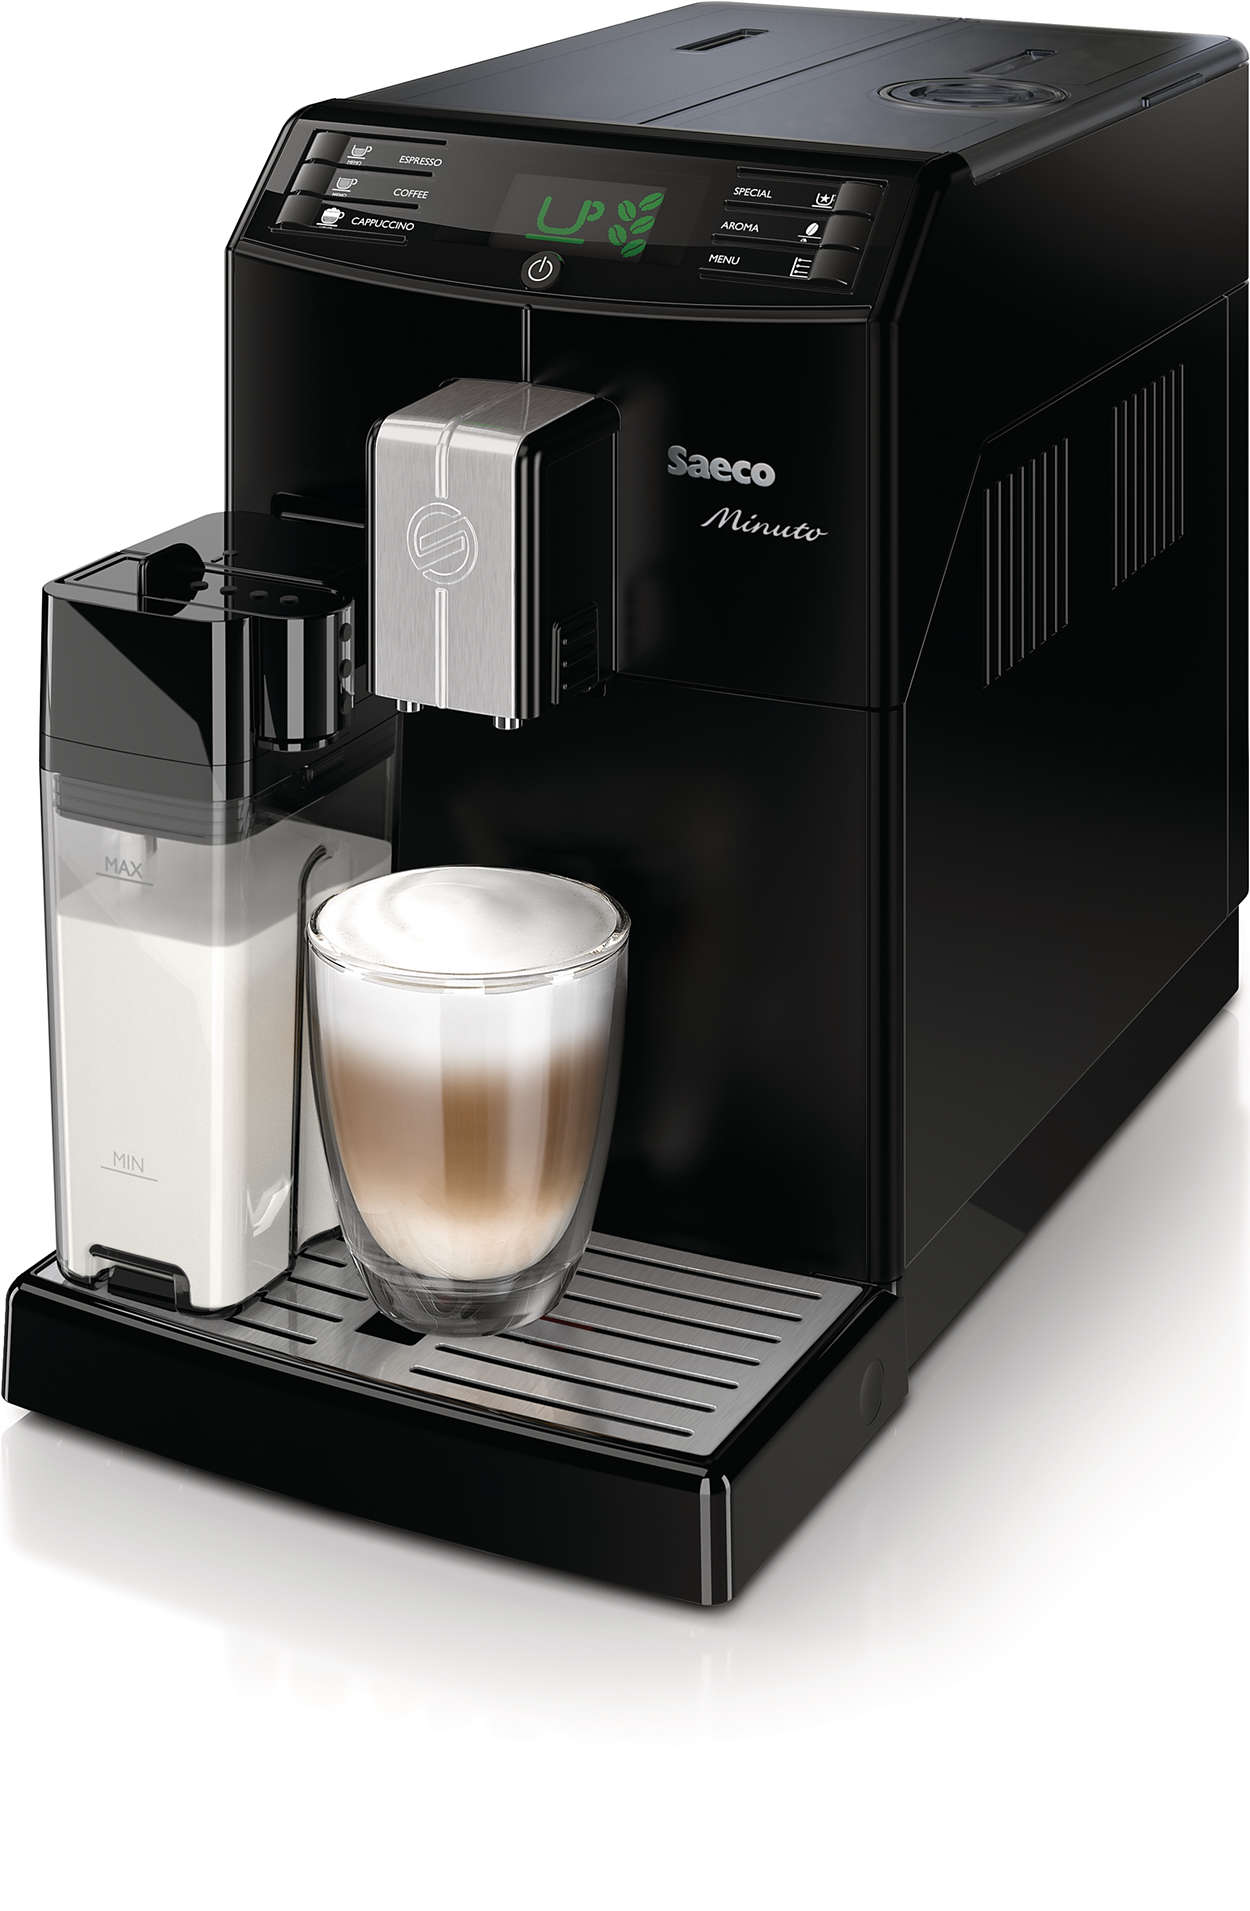 Saeco Coffee Machine Price 2017- The Only Price Guide You Need